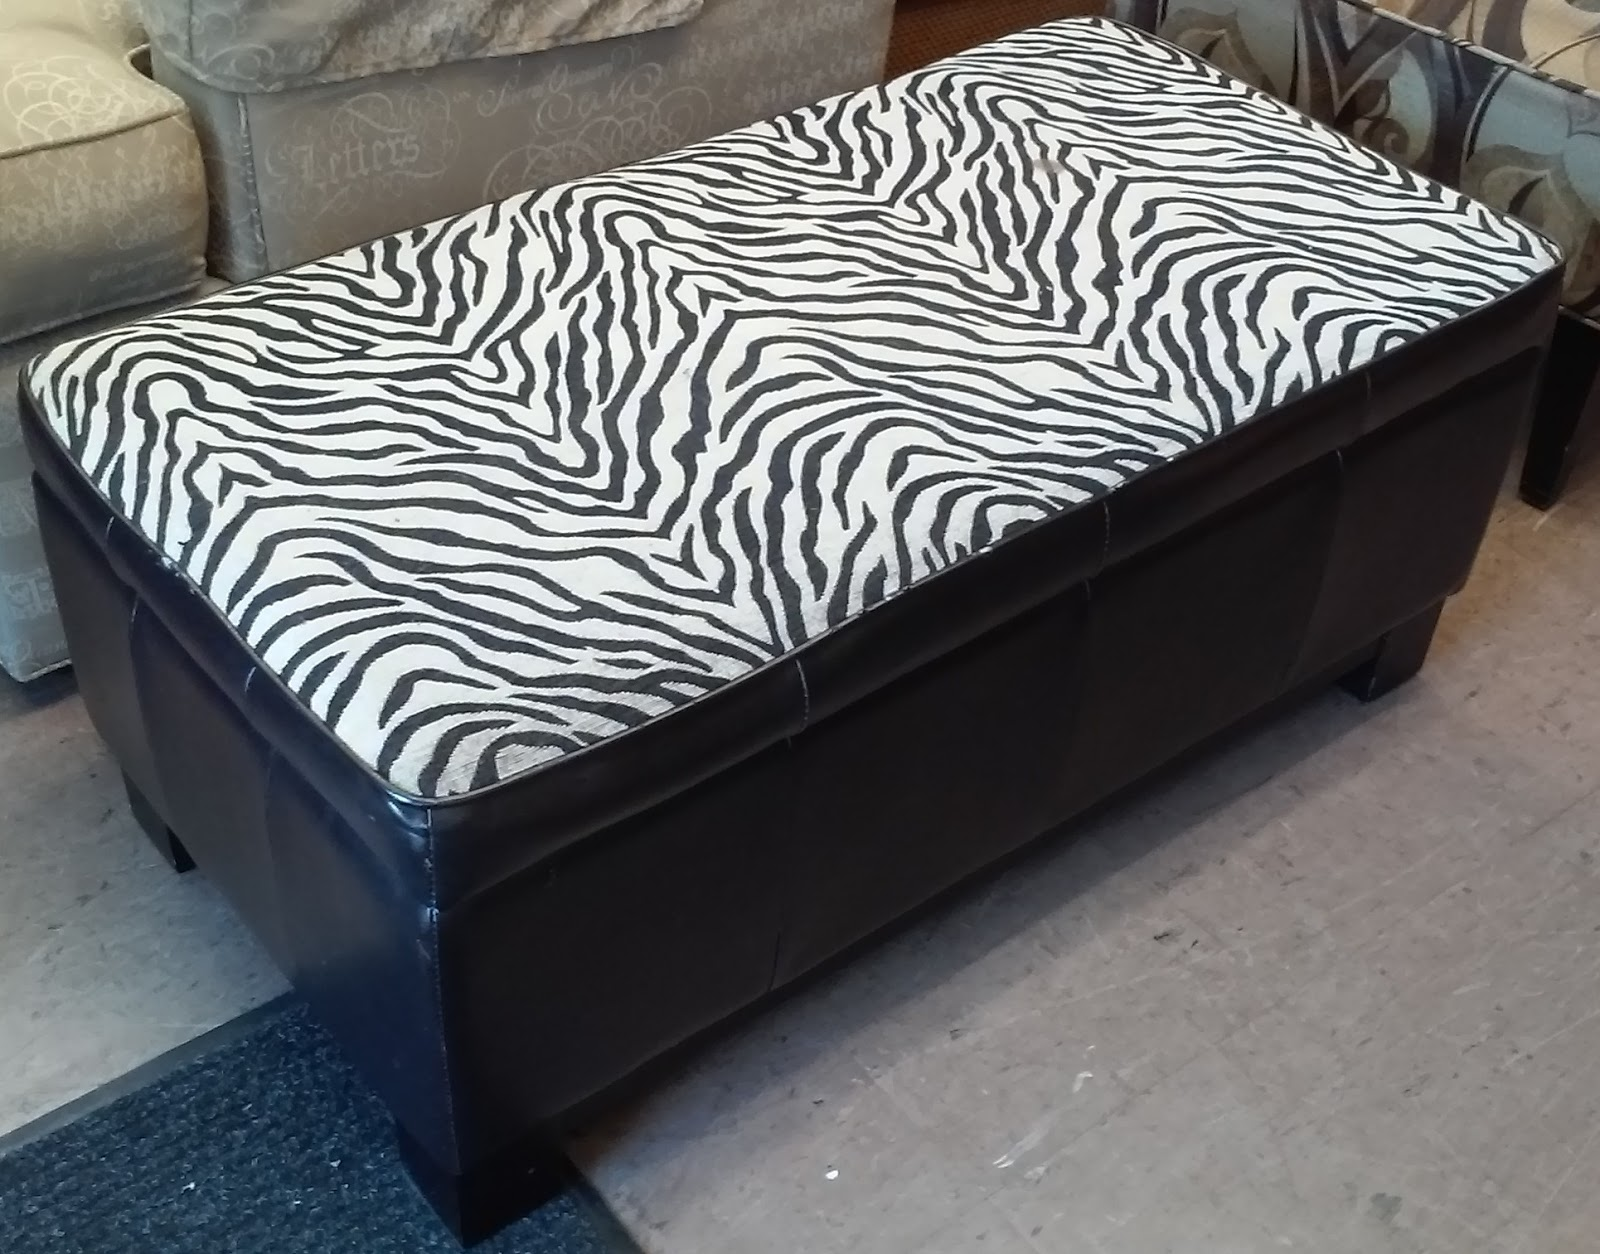 Uhuru Furniture Collectibles Sold Bargain Buy 960 3 1 2 39 Wide Zebra Bench With Storage 20